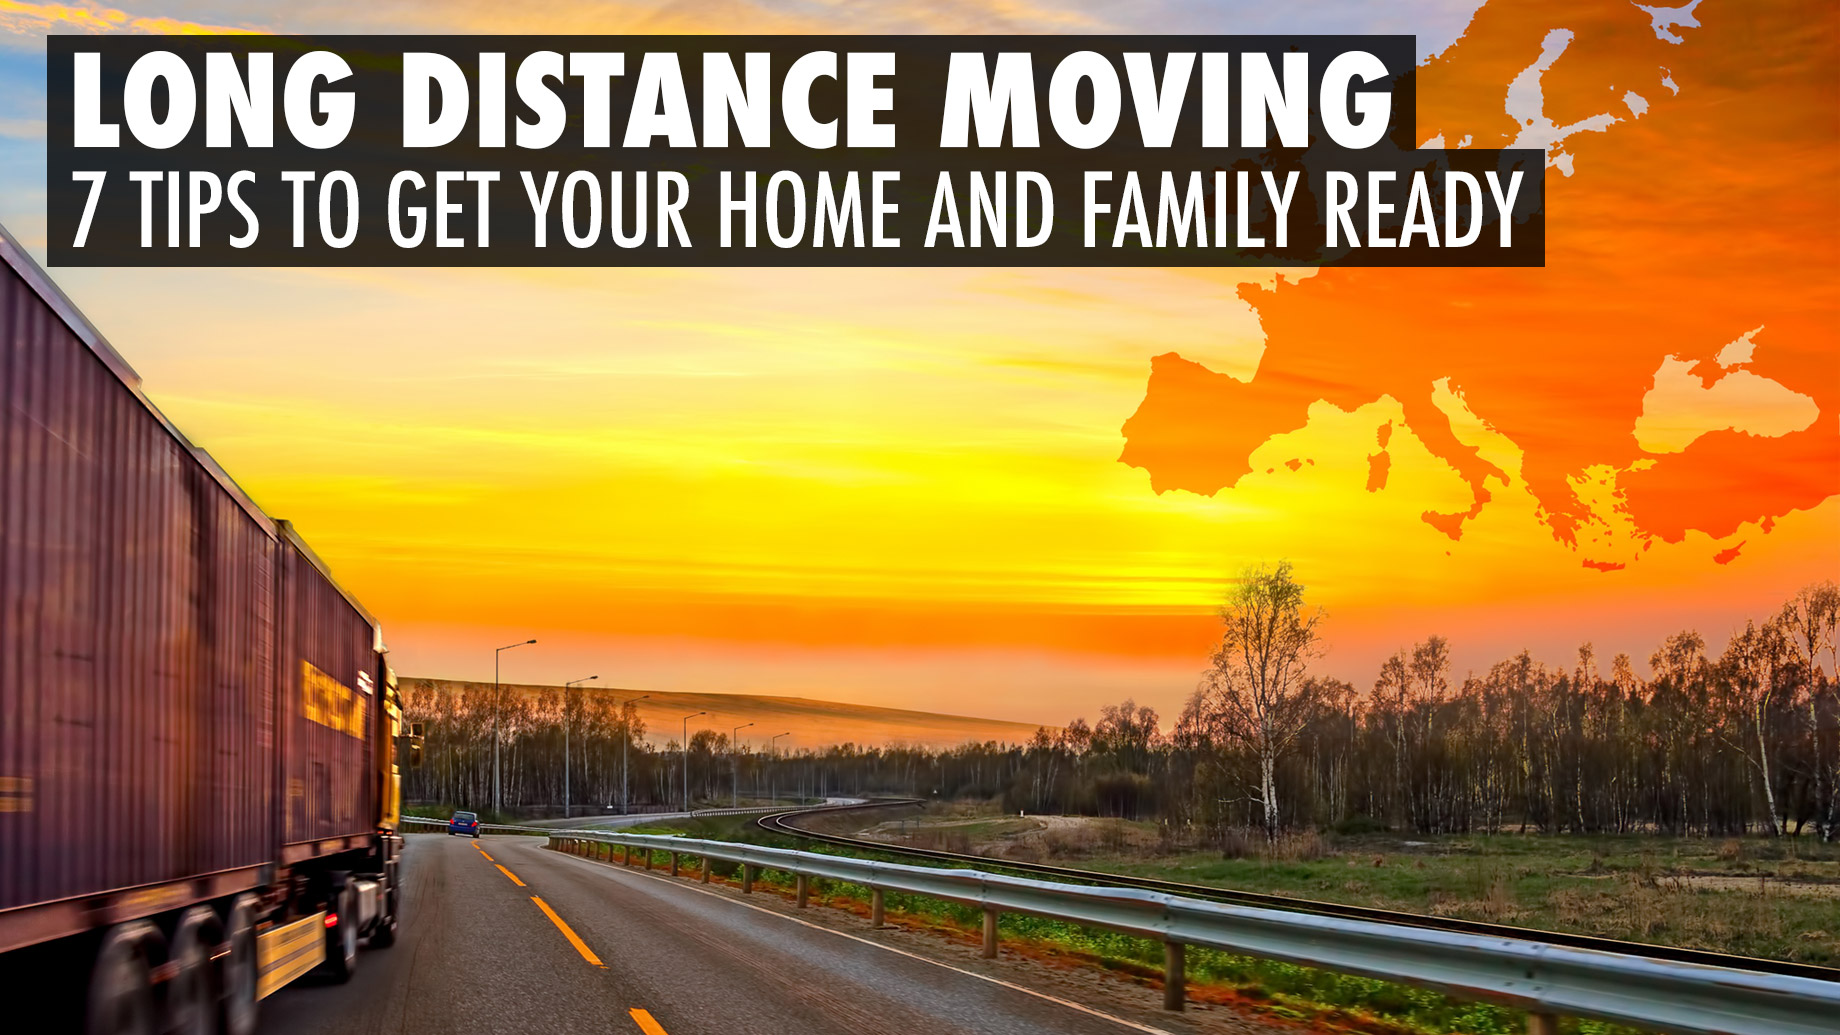 Long Distance Moving - 7 Tips to Get Your Home and Family Ready